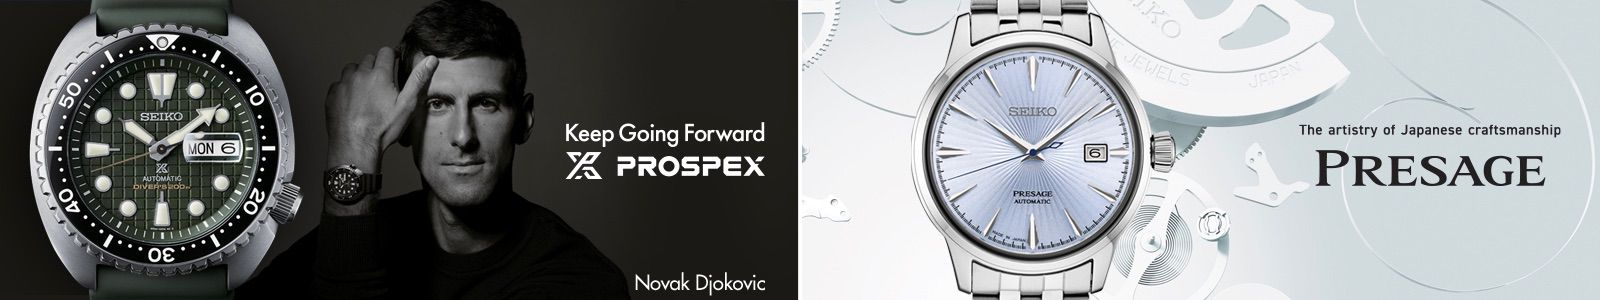 Keep Going Forward, Novak Djokovic, The artistry of japanese craftsmanship, Presage